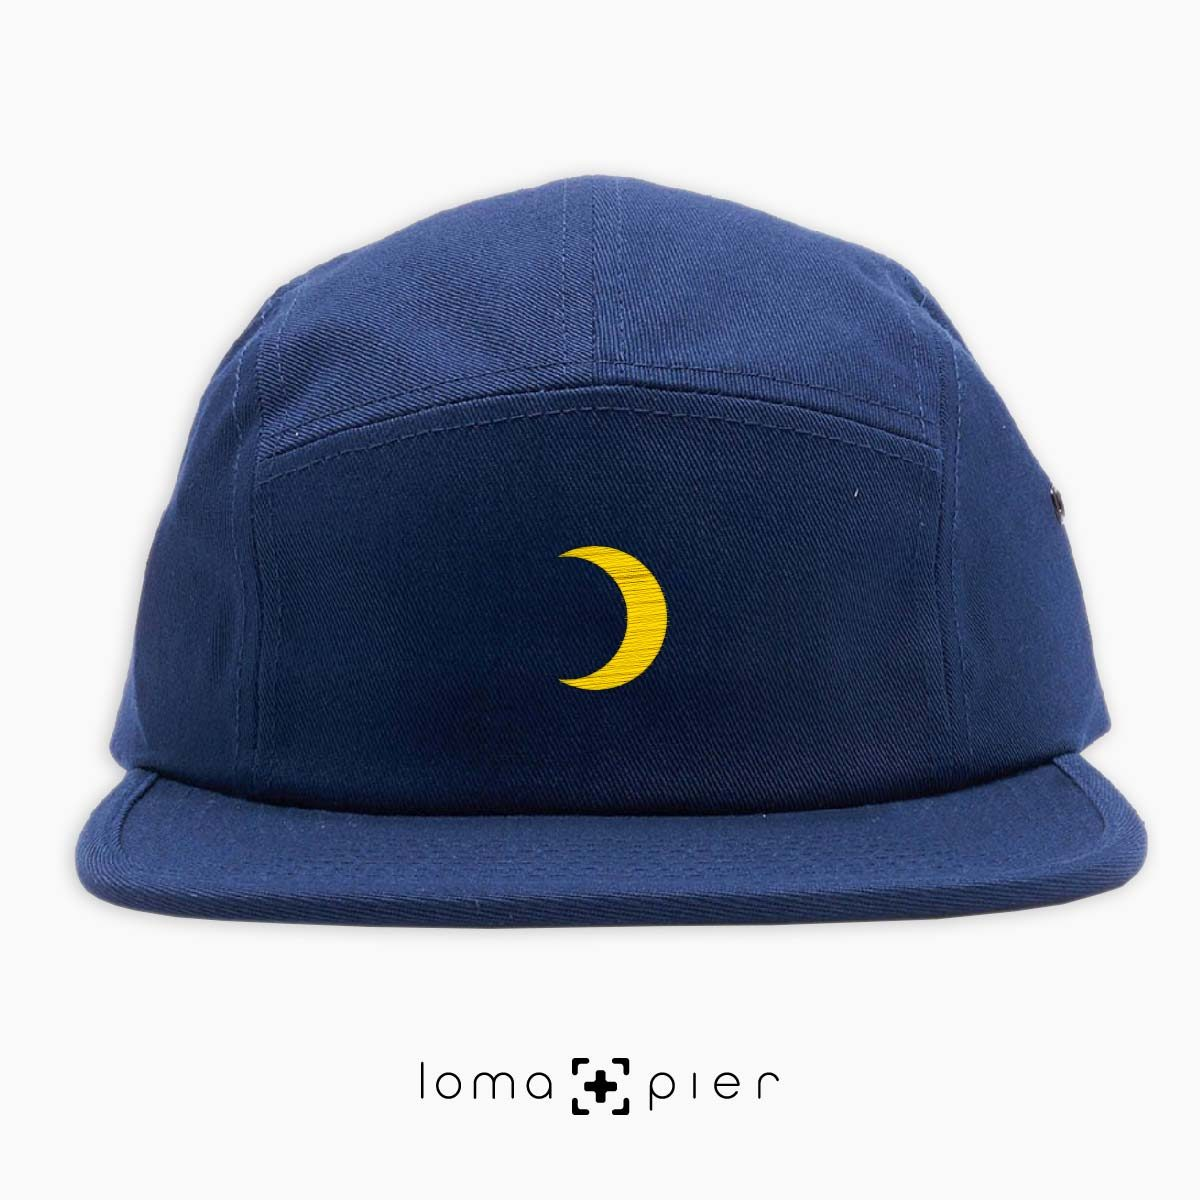 MOON icon embroidered on a navy blue cotton 5-panel hat by loma+pier hat store